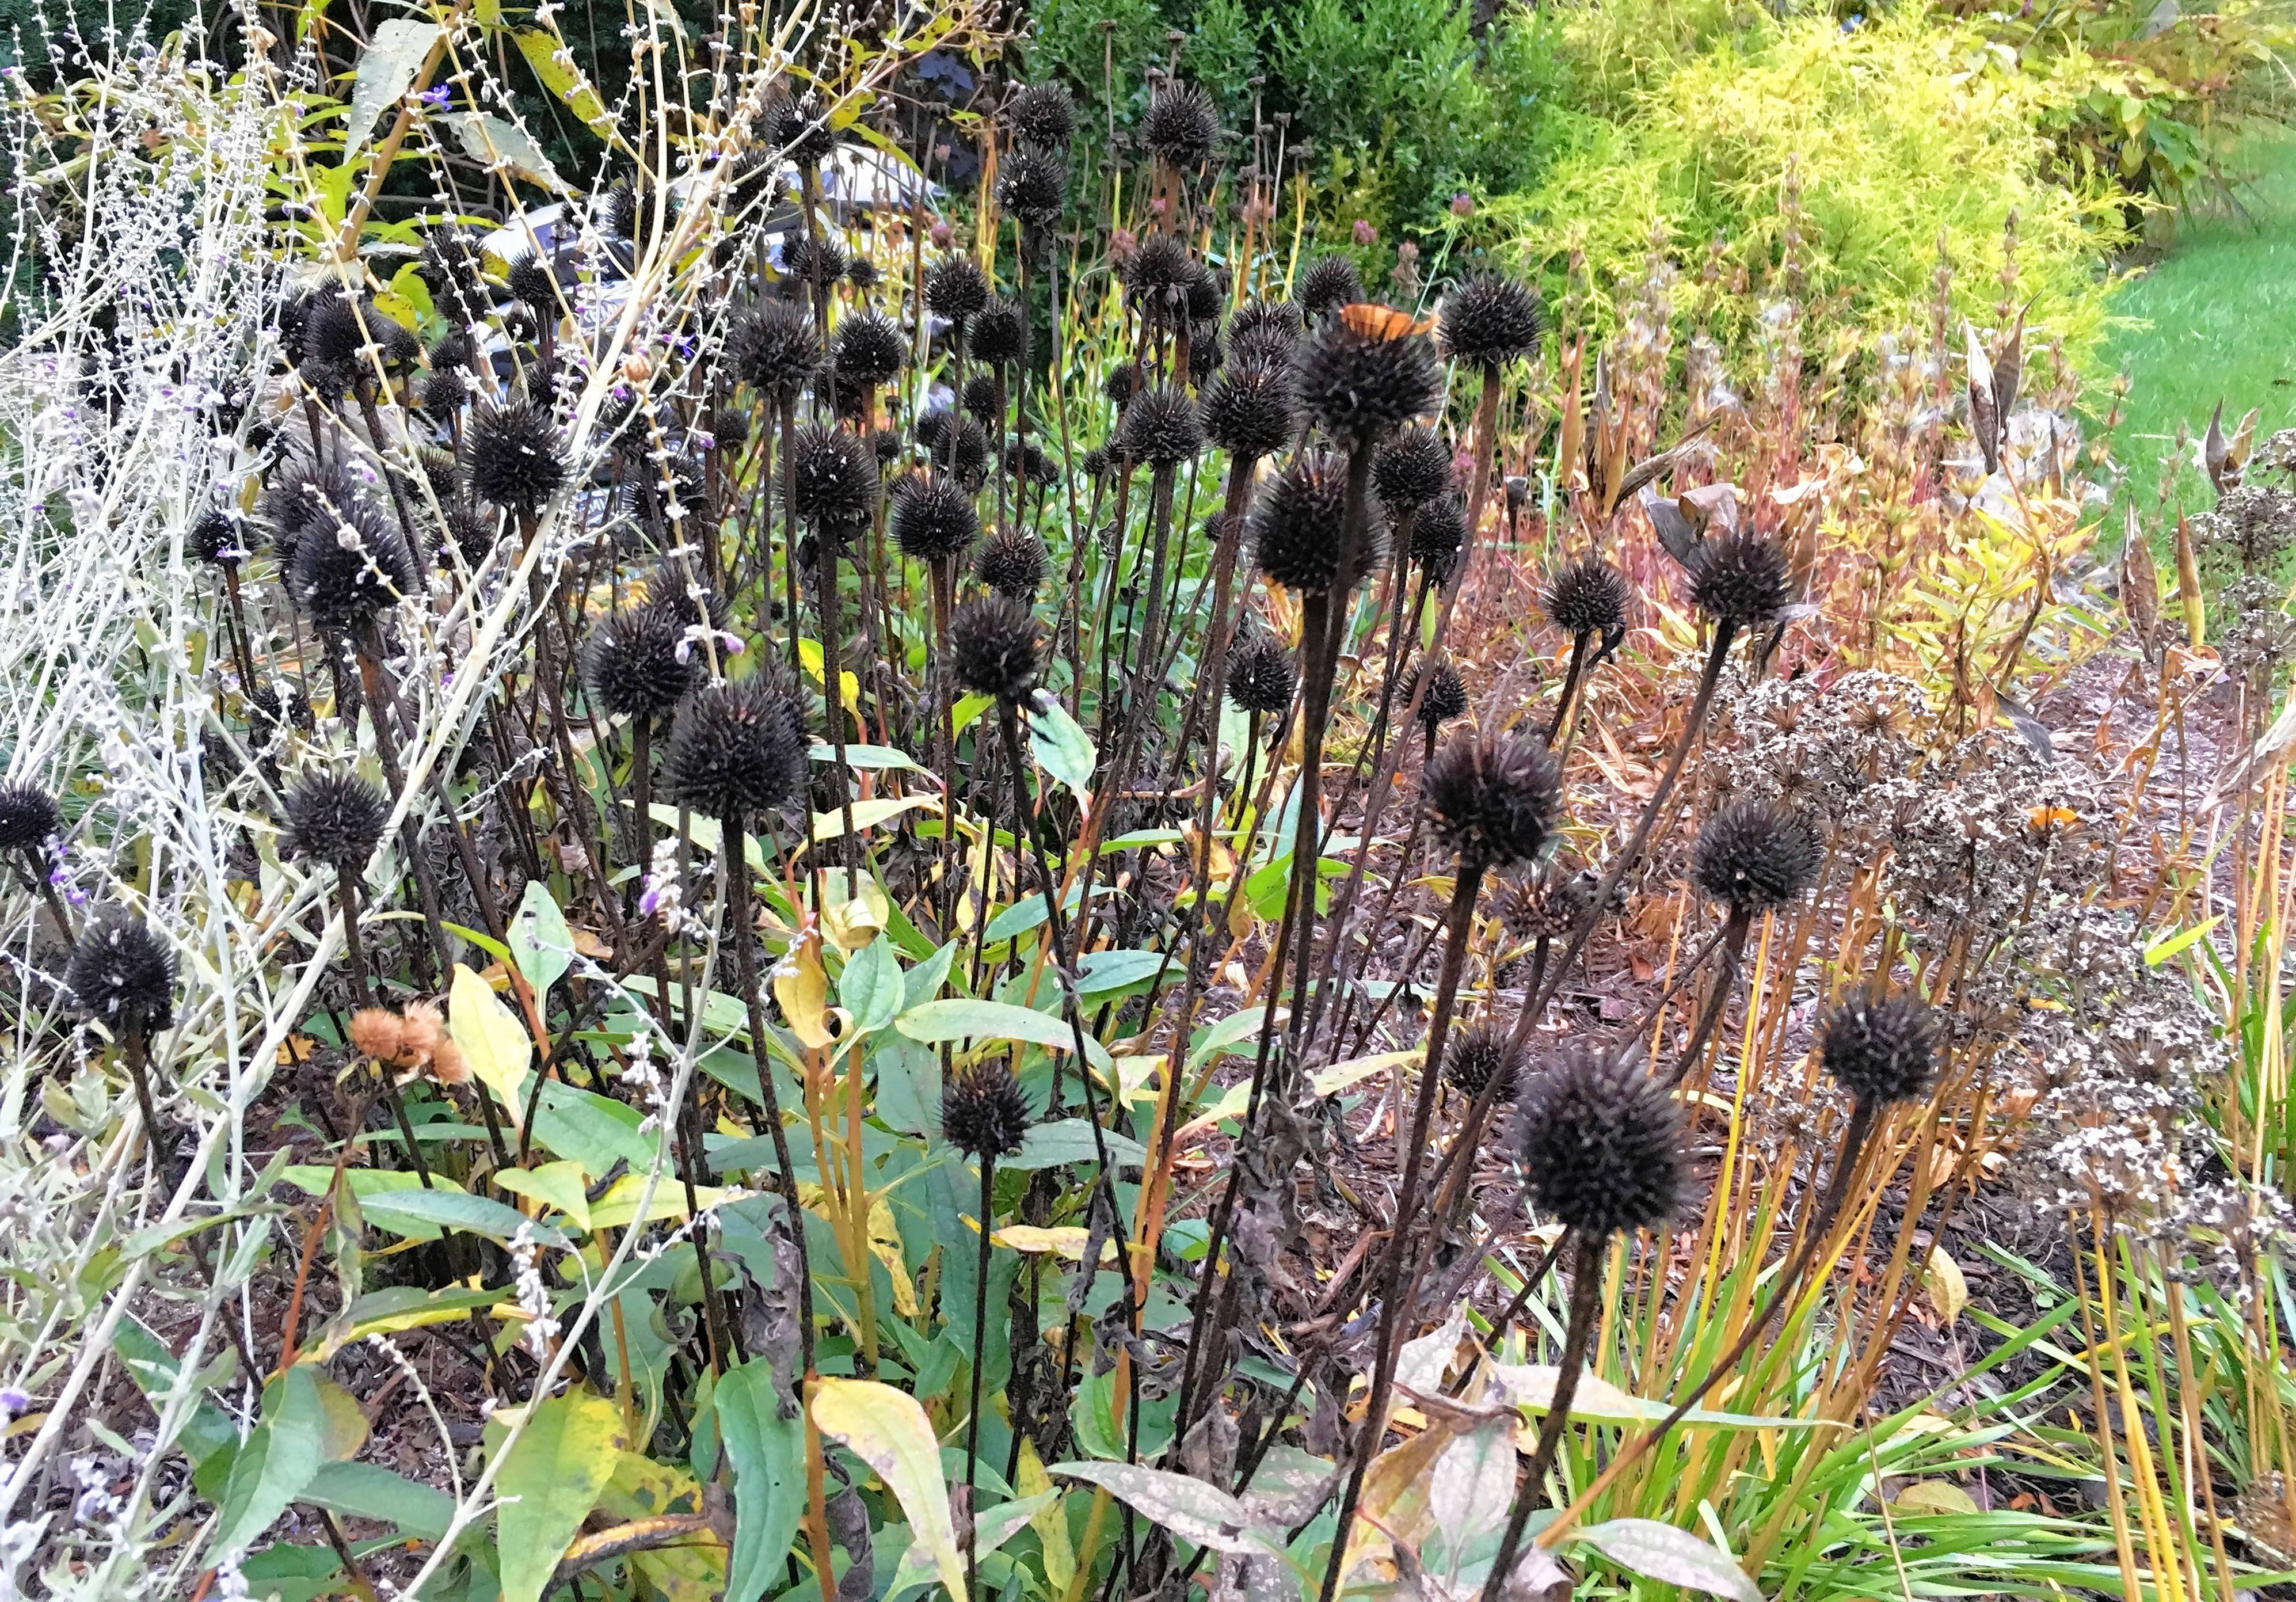 Seed heads provide food for birds that will bring their color and songs to your garden in fall and winter.